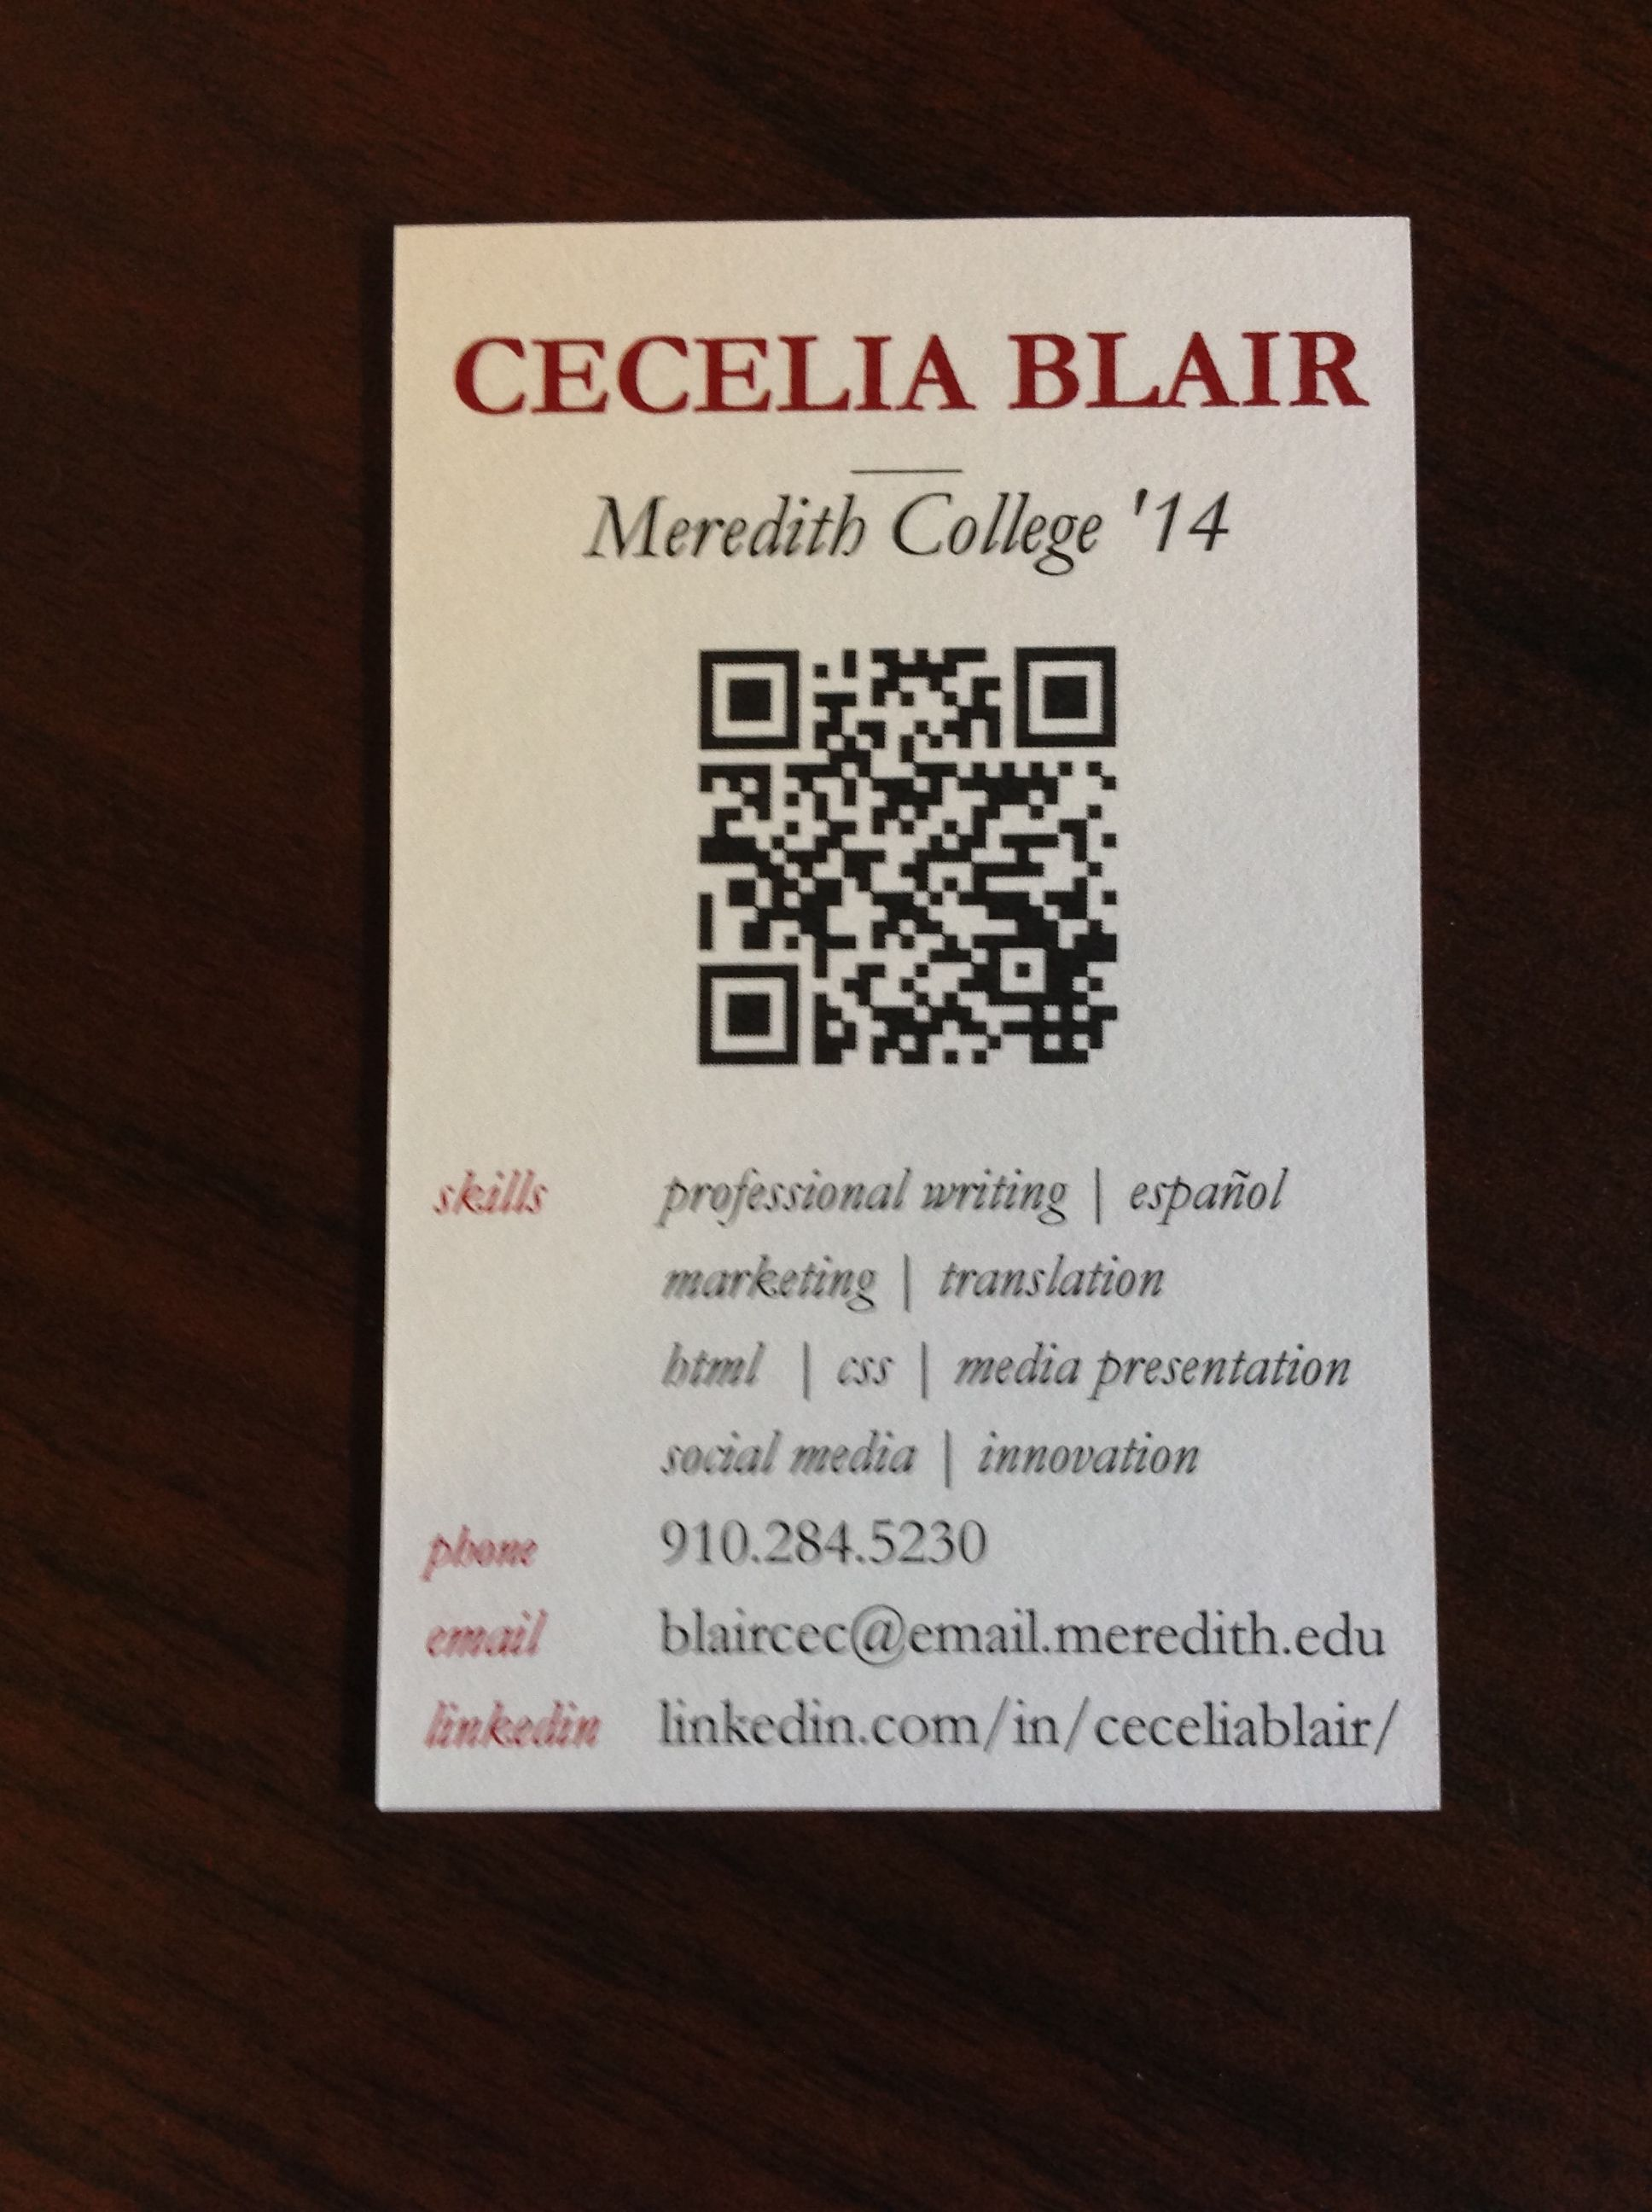 Sample Business Card Information To Include Okay